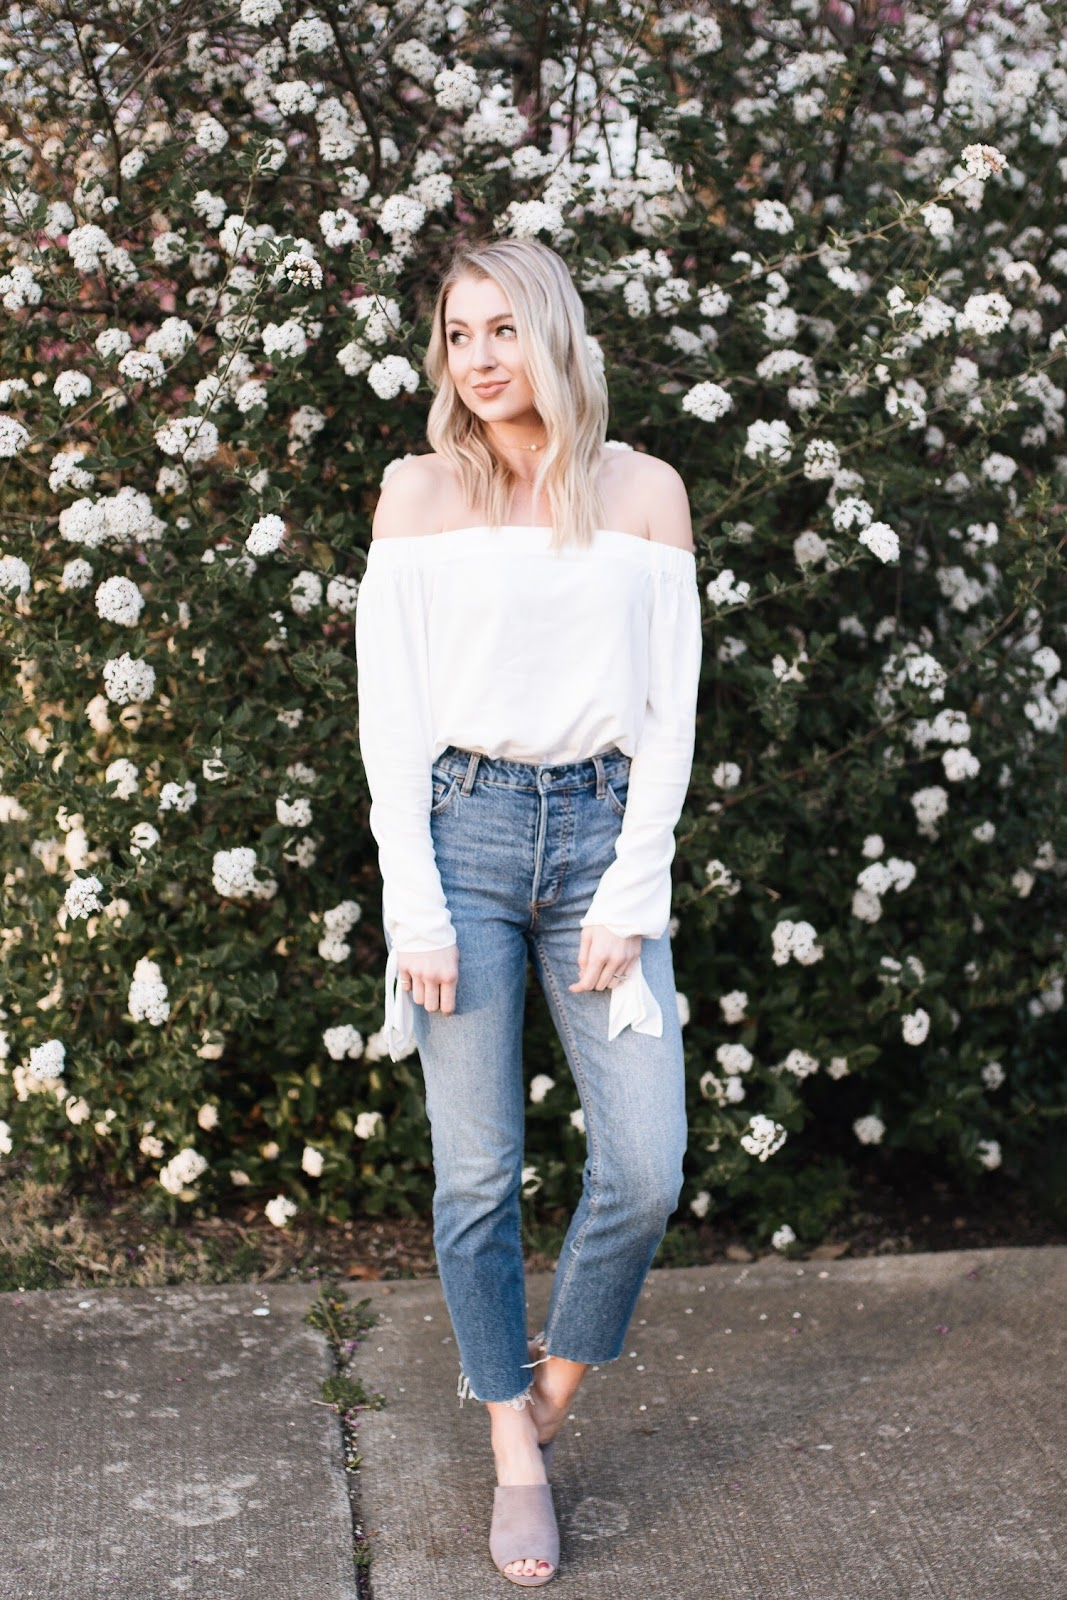 relaxed spring outfit with an off-the-shoulder top